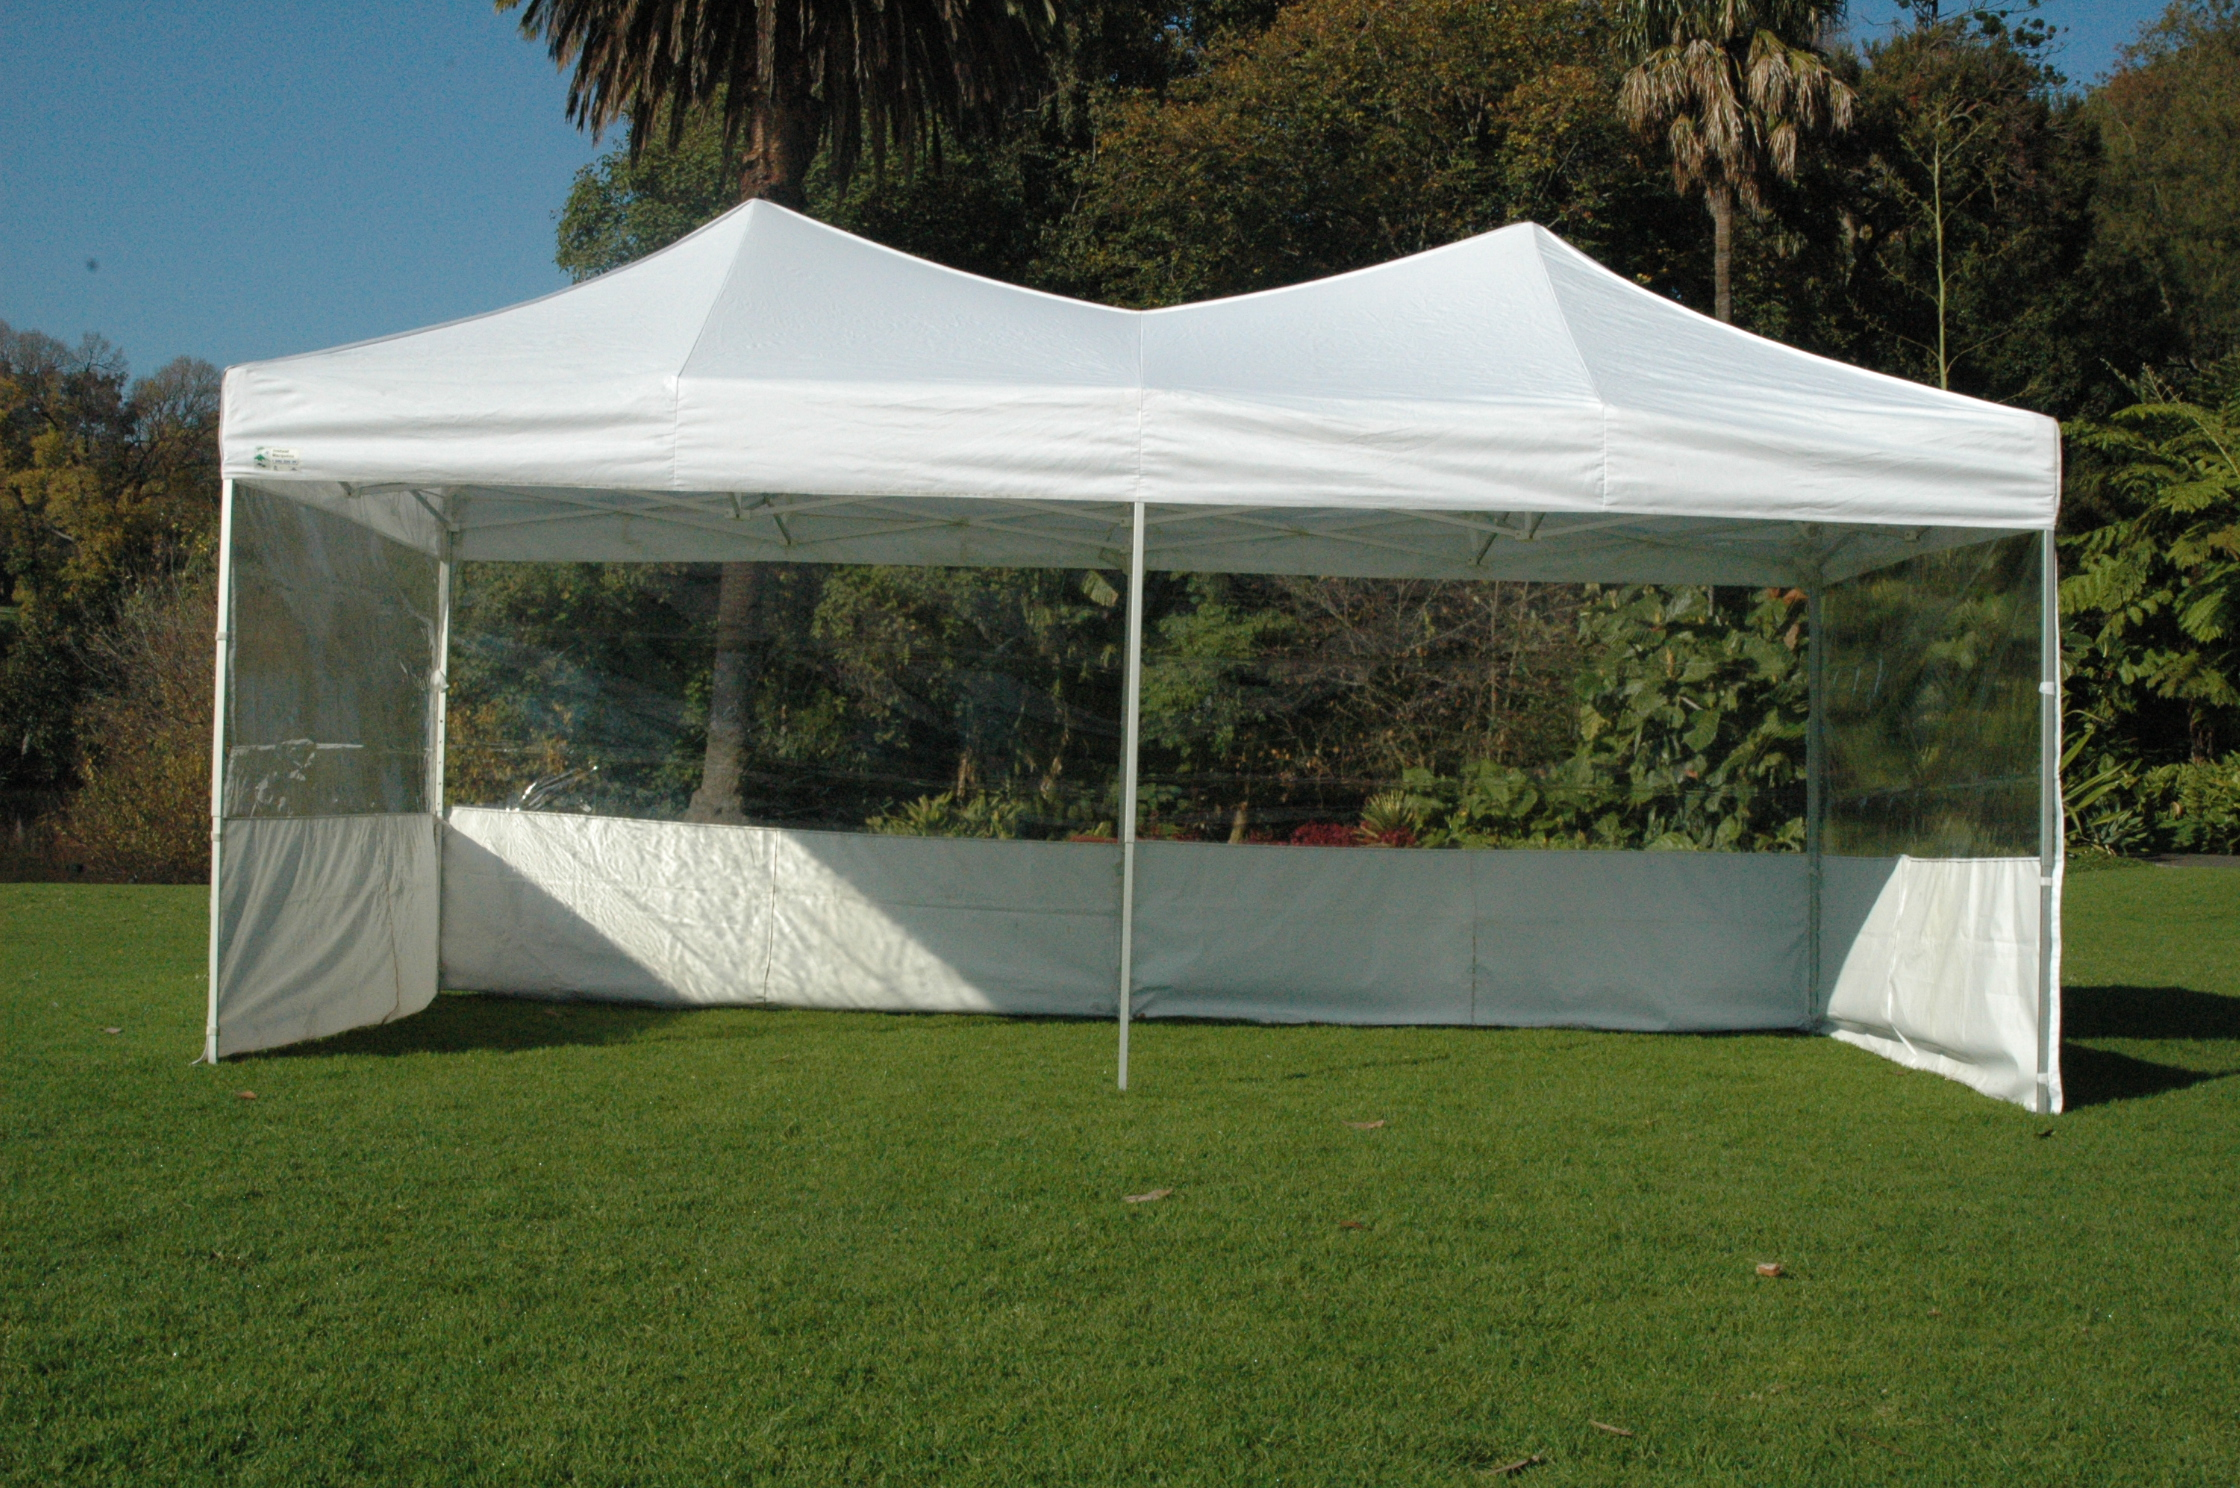 3m x 6m with half clear walls : tent melbourne - memphite.com